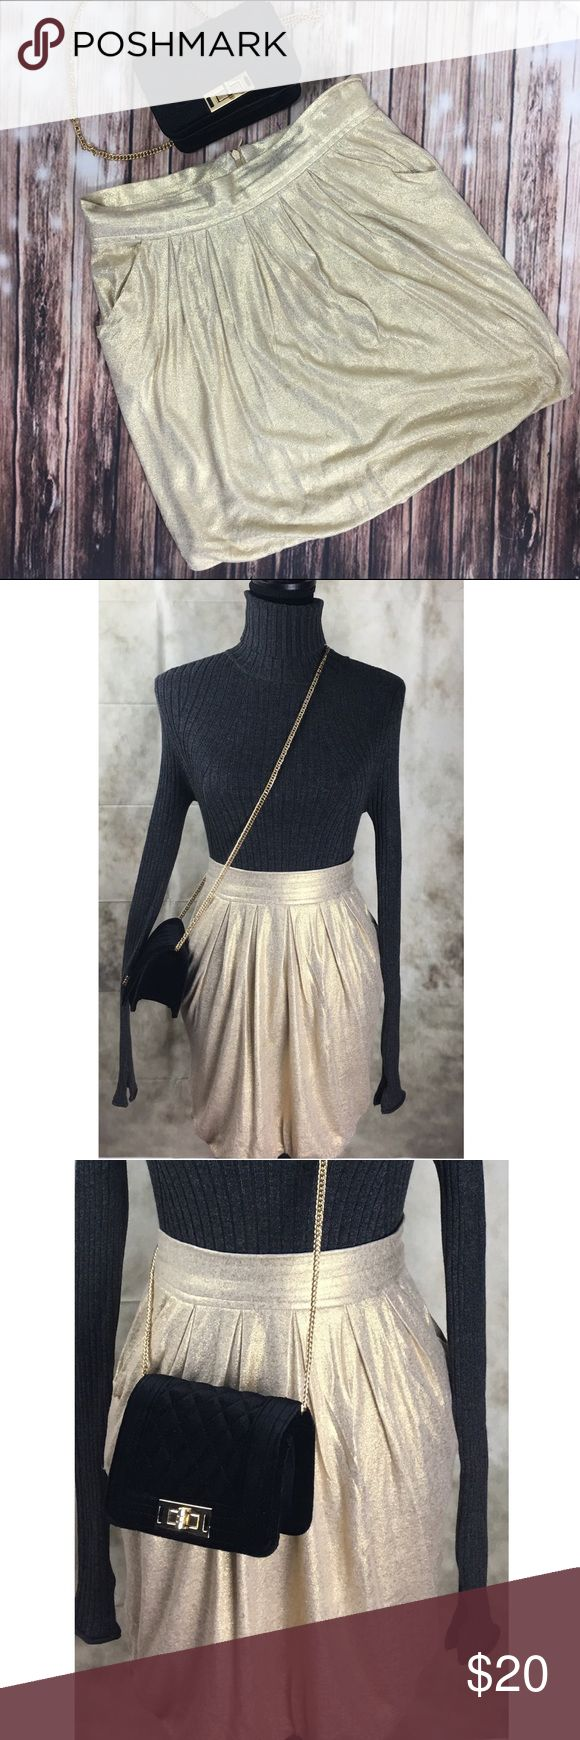 Zara Collection Soft Gold Balloon Hem Mini Skirt New Years Eve ready in this soft gold/champagne colored fun mini! This skirt is a women's size Medium, in excellent condition. Fully lined, balloon hem hits just above the knee. This skirt is fun and flirty for a night out on the town or an upcoming holiday party. Zara Skirts Mini